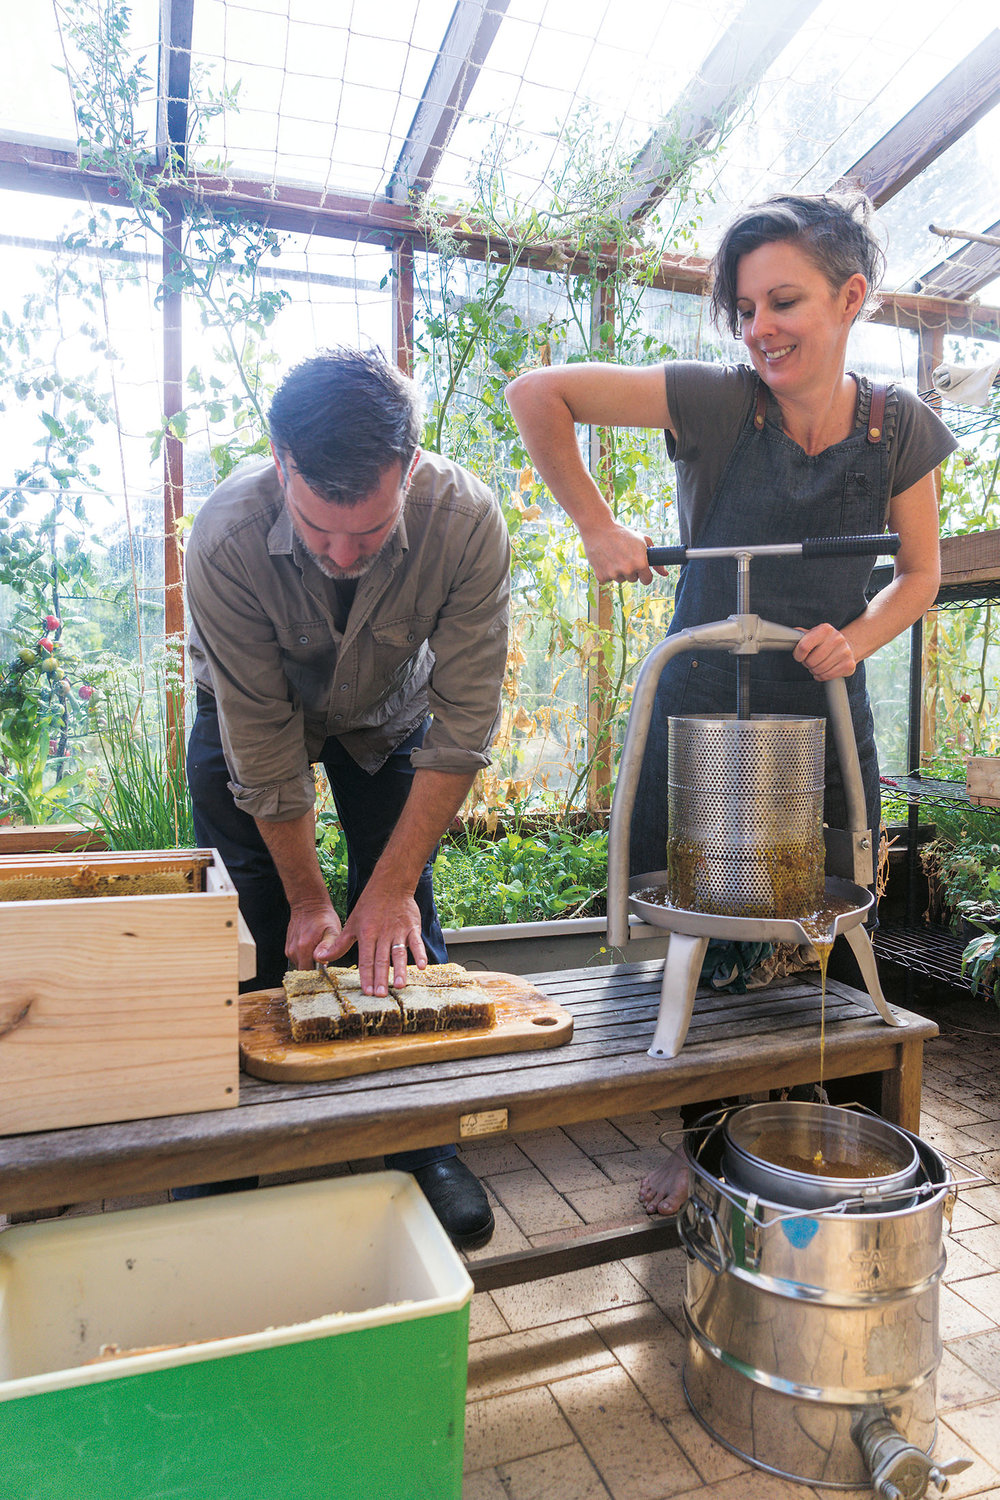 Image supplied by Milkwood Permaculture